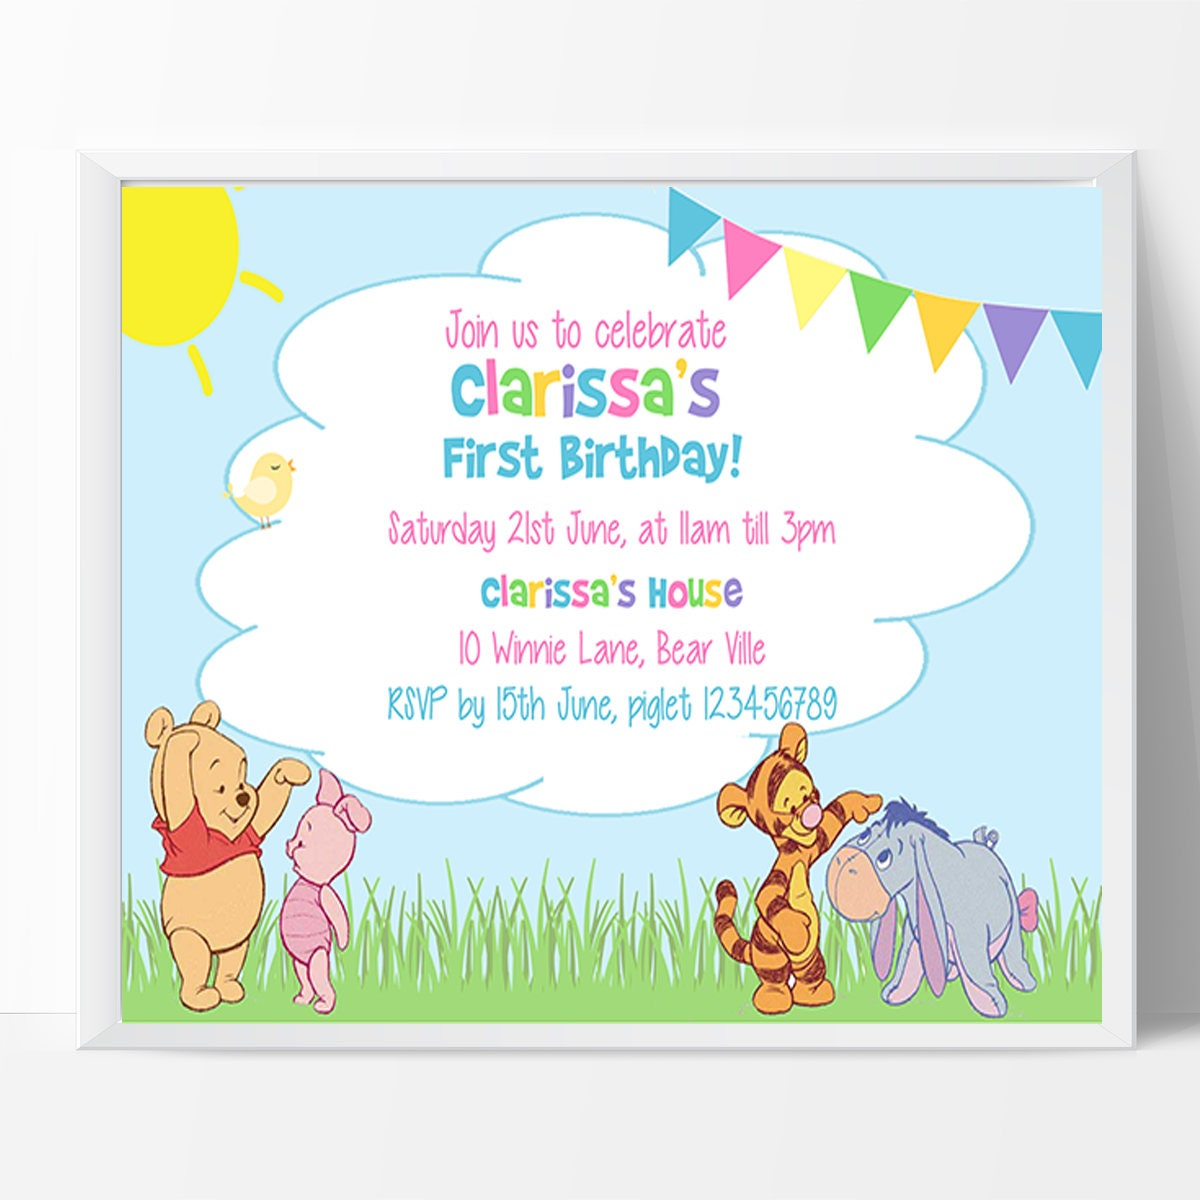 Winnie the pooh birthday invitation 1st birthday note personalised winnie the pooh birthday invitation 1st birthday note personalised and ready for you to filmwisefo